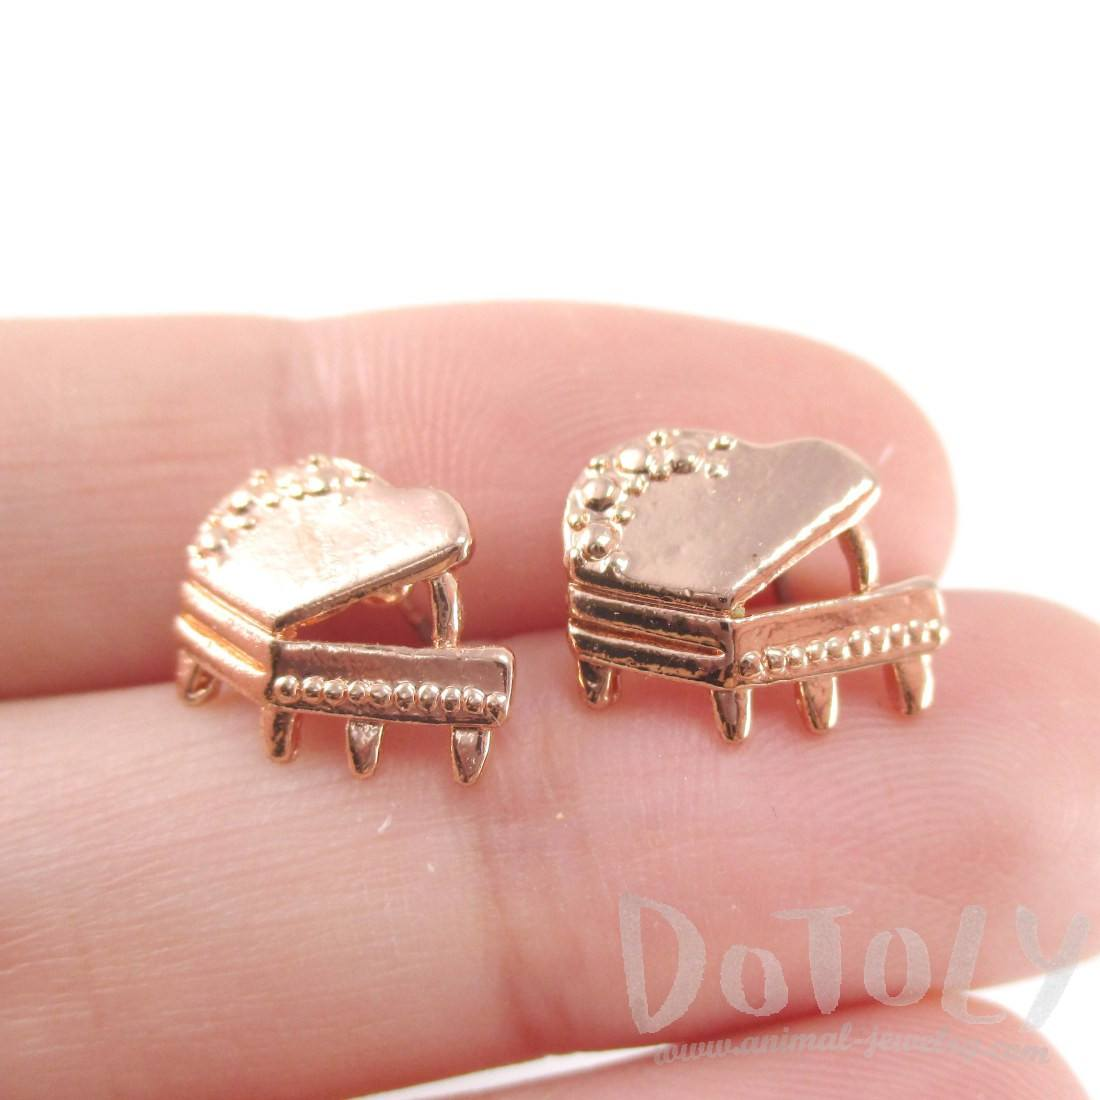 3D Piano Shaped Music Themed Stud Earrings in Rose Gold